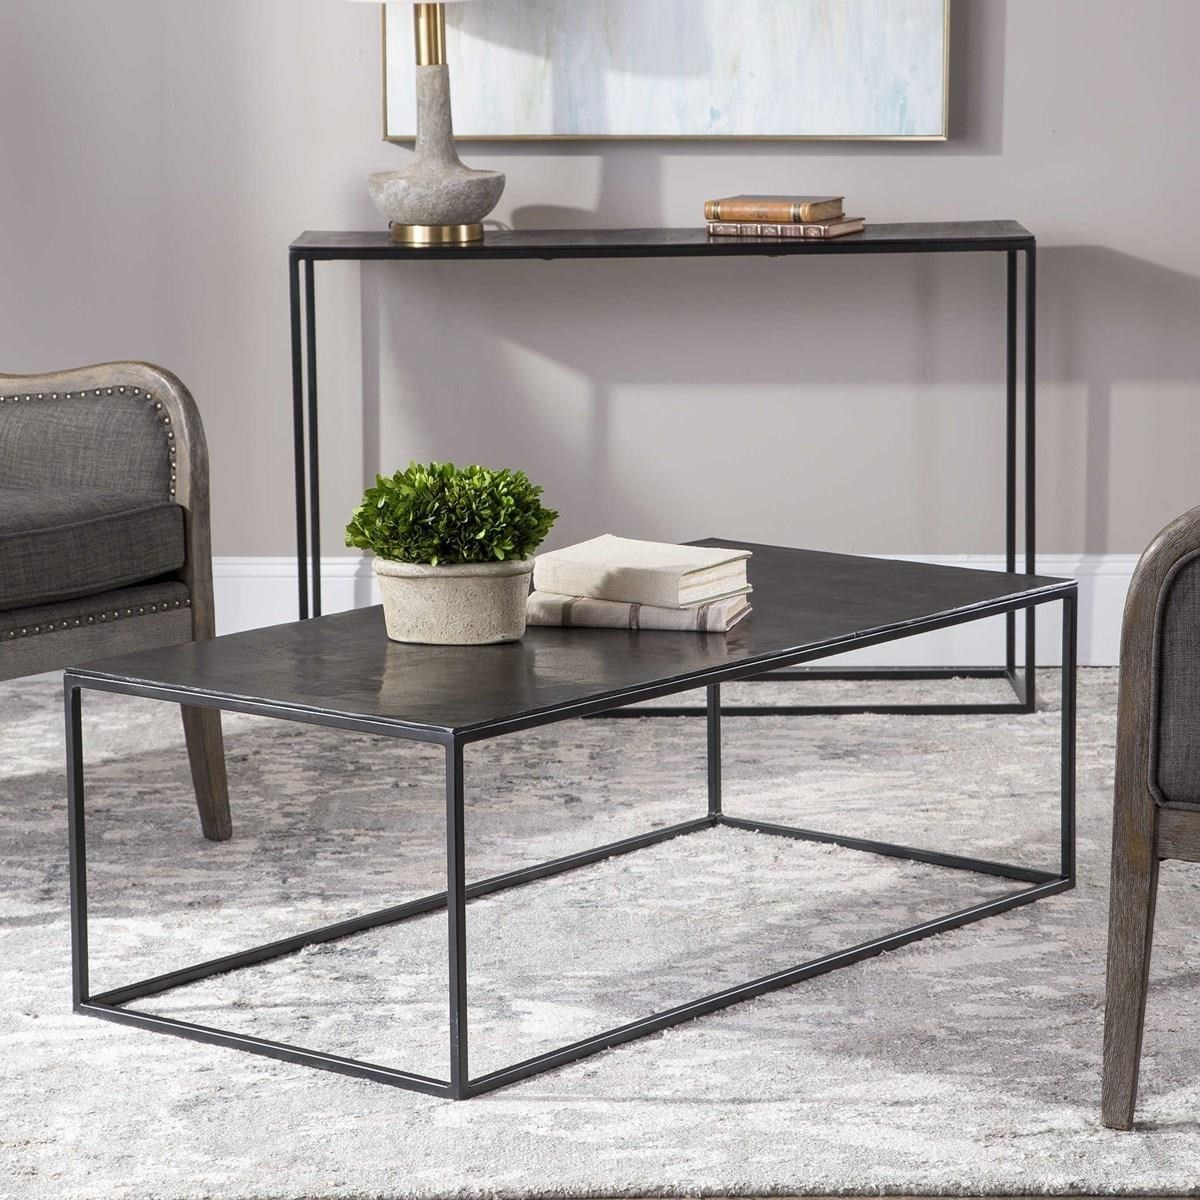 Accent Furniture - Occasional Tables Coreene Industrial Coffee Table by Uttermost at Miller Waldrop Furniture and Decor